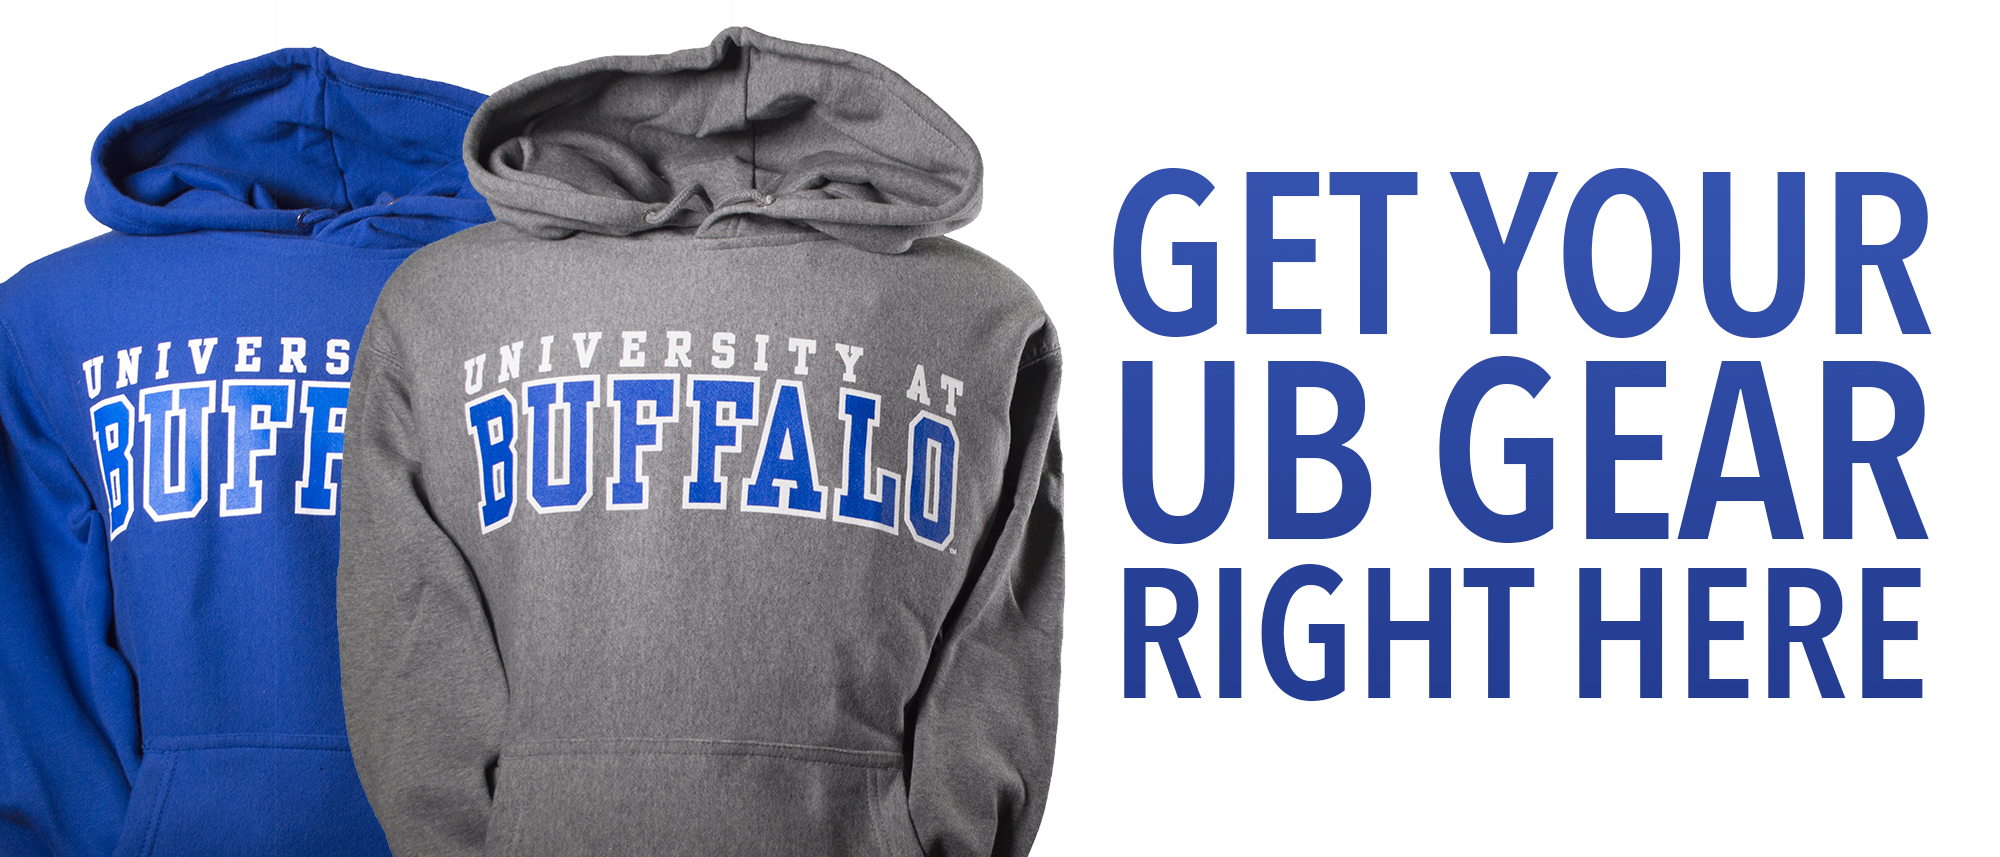 Get your UB gear right here.